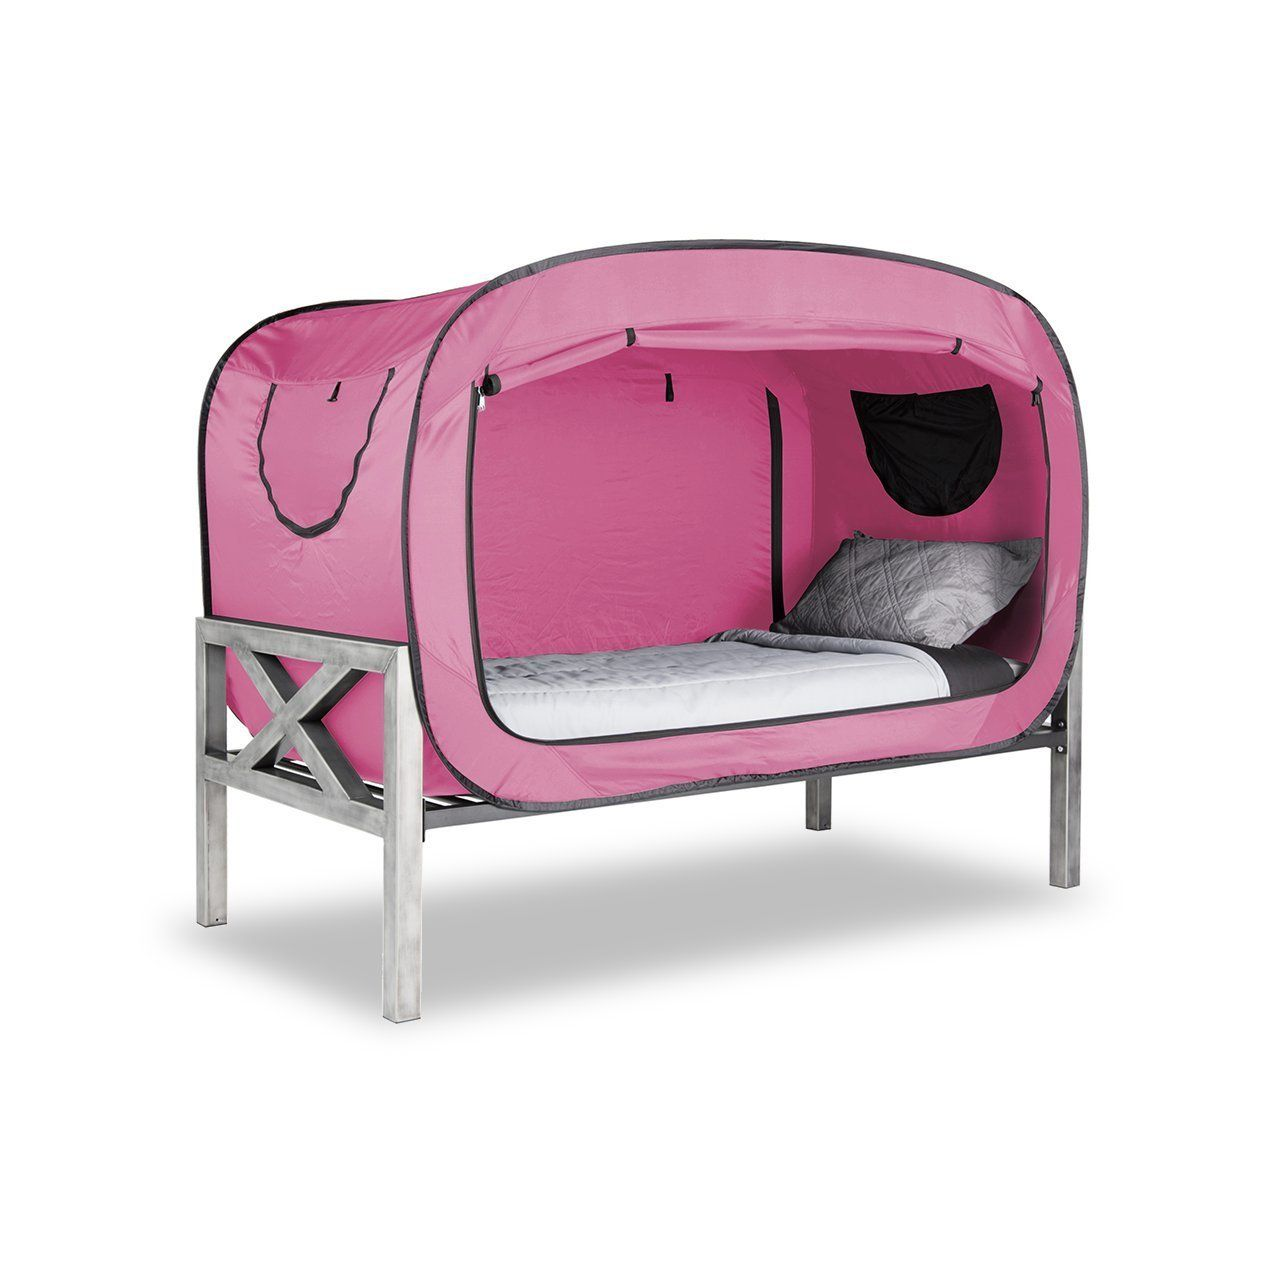 Privacy Pop Bed Tent (Twin)  sc 1 st  Pinterest : privacy bed tent - memphite.com